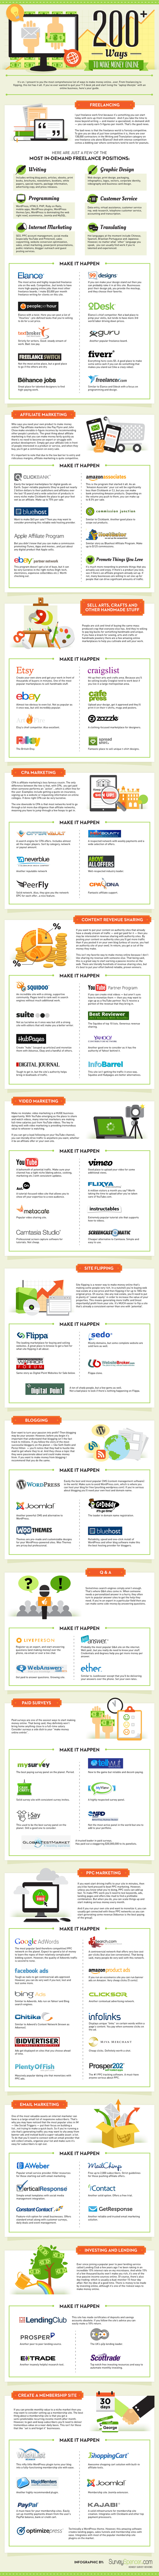 make_money_online_infographic-new